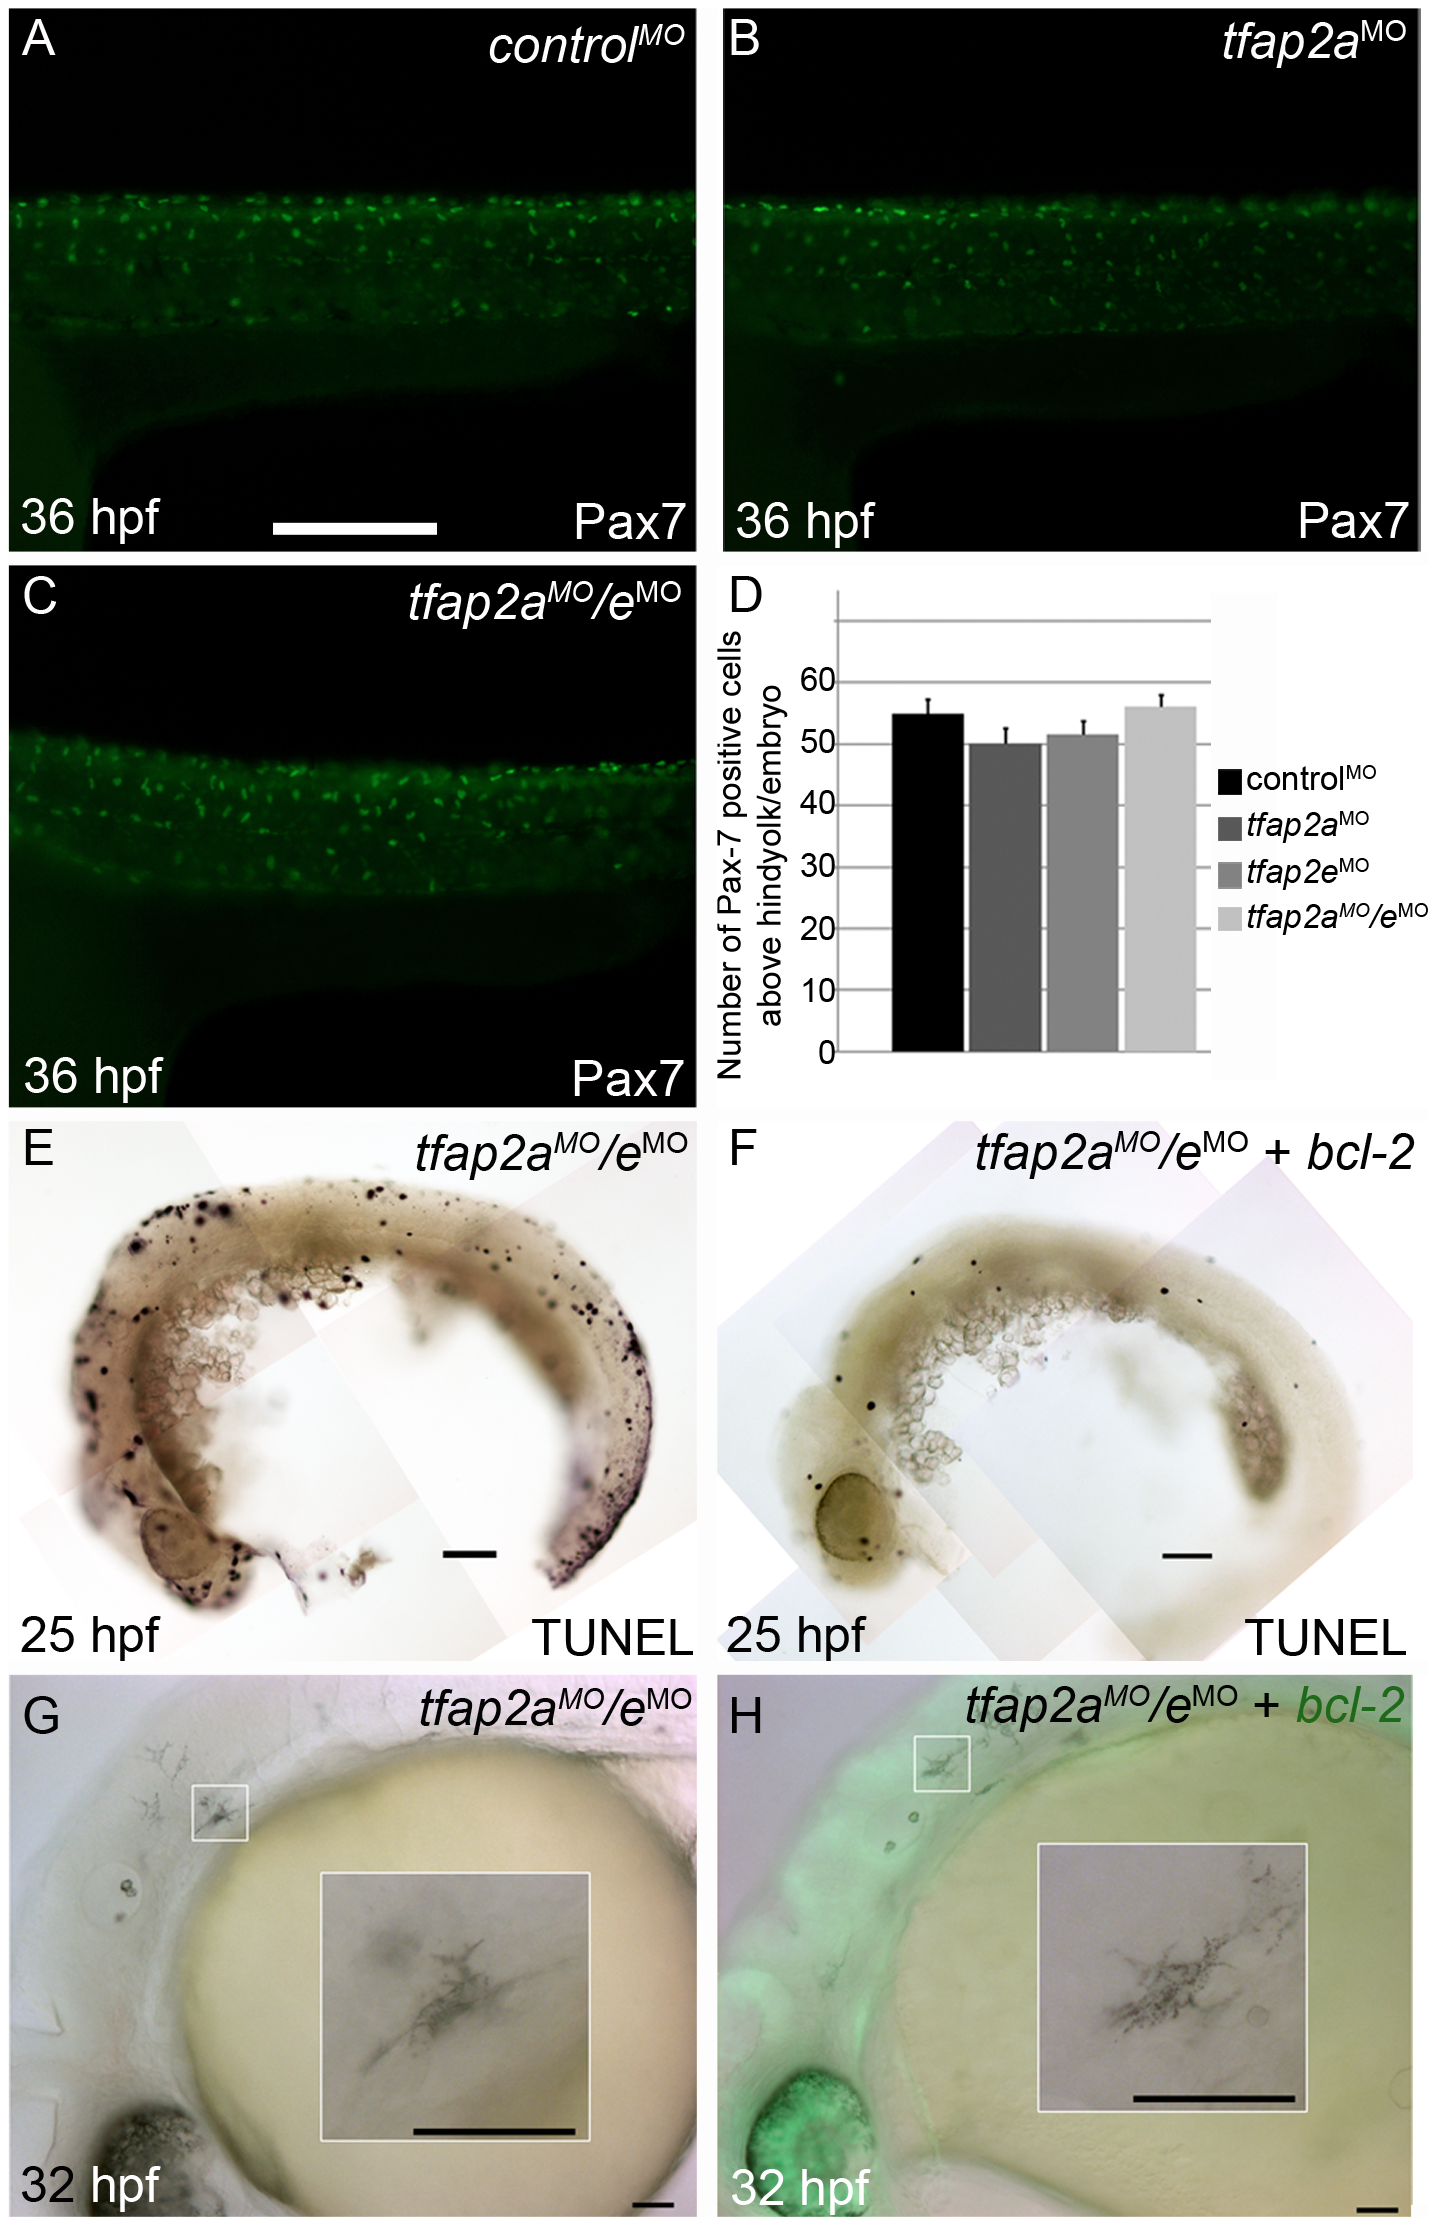 Contribution of cell fate specification and cell death to melanophore defects in <i>tfap2a/e</i> doubly-deficient embryos.